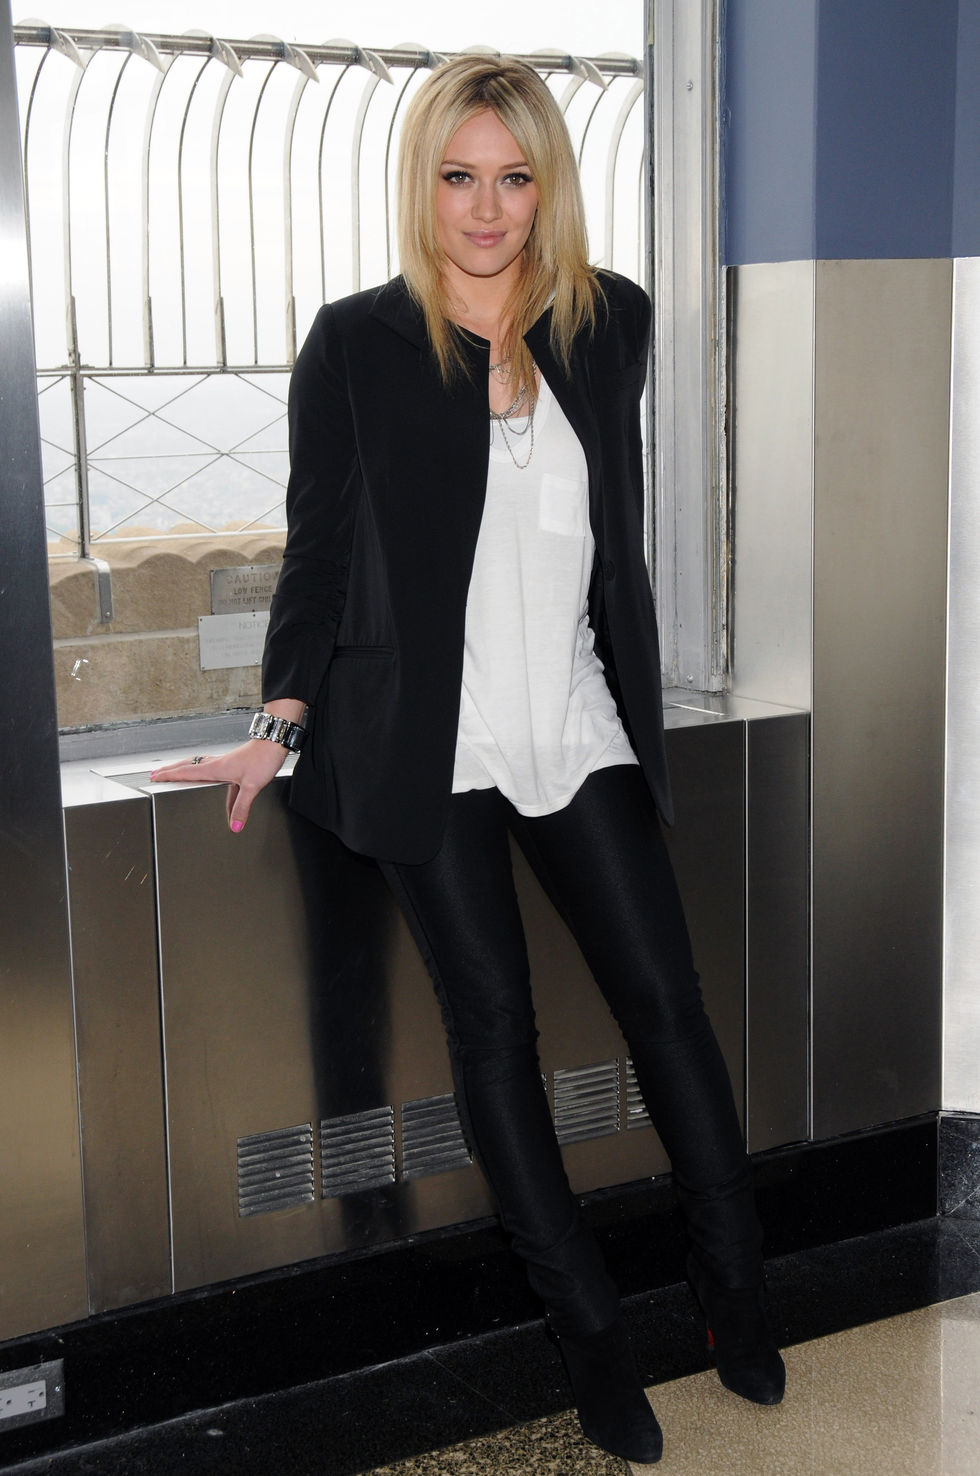 hilary-duff-lights-up-the-empire-state-building-in-new-york-01